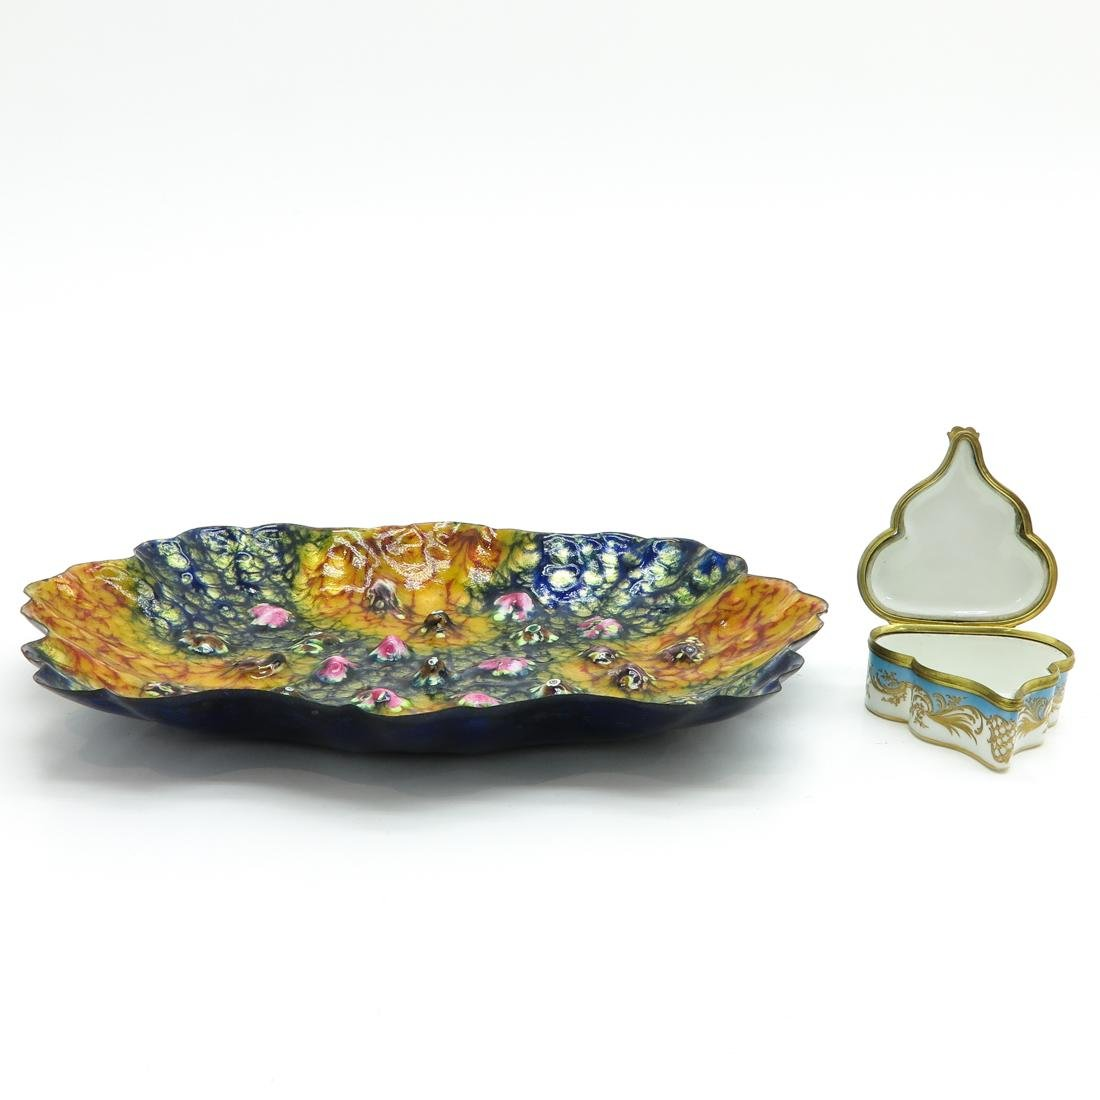 Small Jewelry Box and Enameled Plate